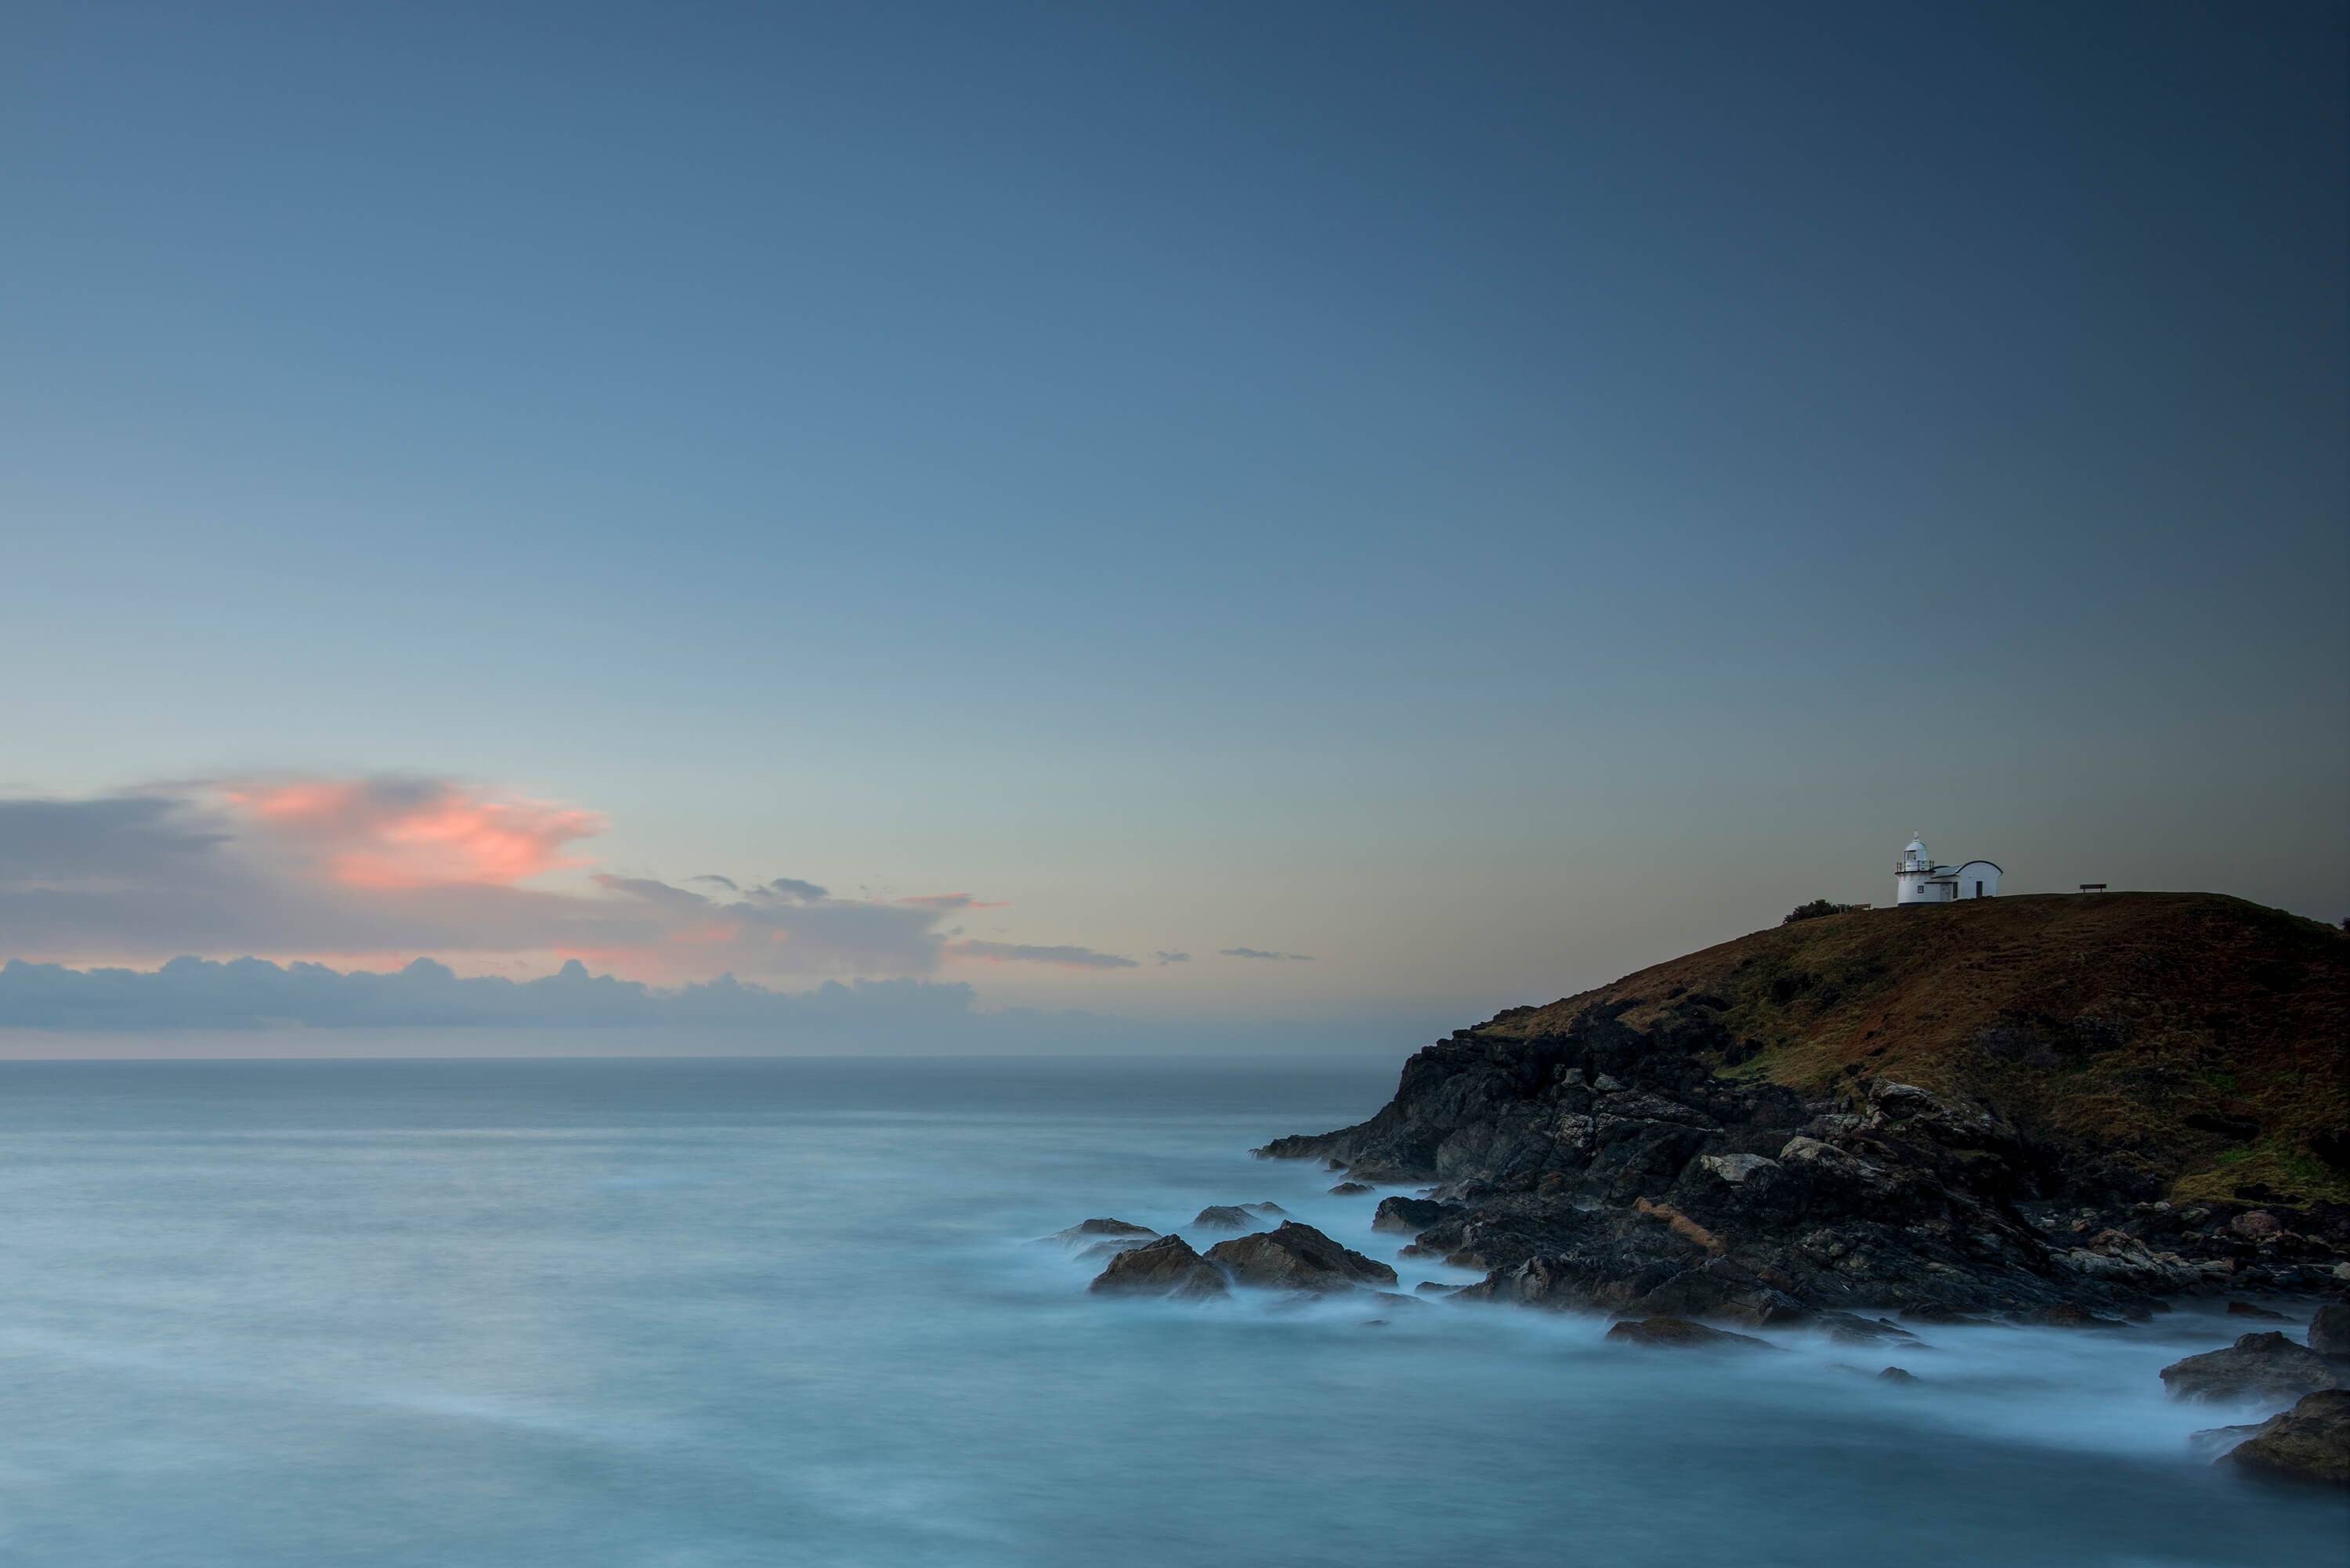 Long exposure landscape photo shot with Lee Filters Little Stopper